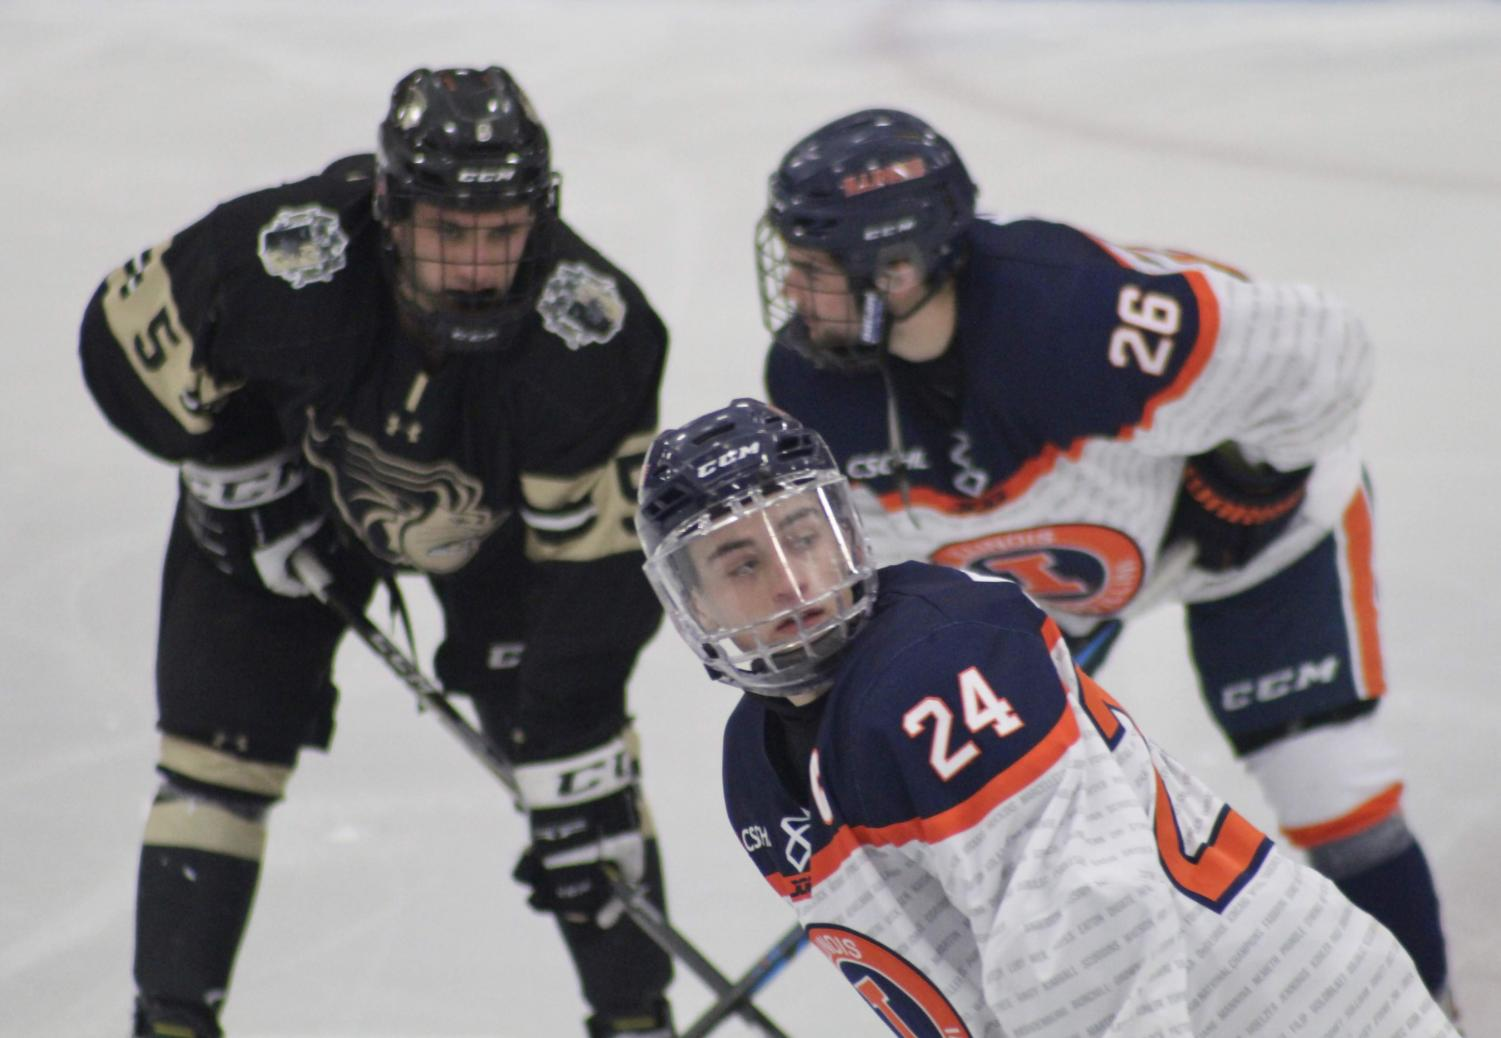 Illinois forwards Bobby Ernsting (front) and Thomas Kolaz (back) face off with a Lindenwood player during the Illinois vs. Lindenwood game at the Ice Arena on Jan. 18. Illinois lost 2-1.